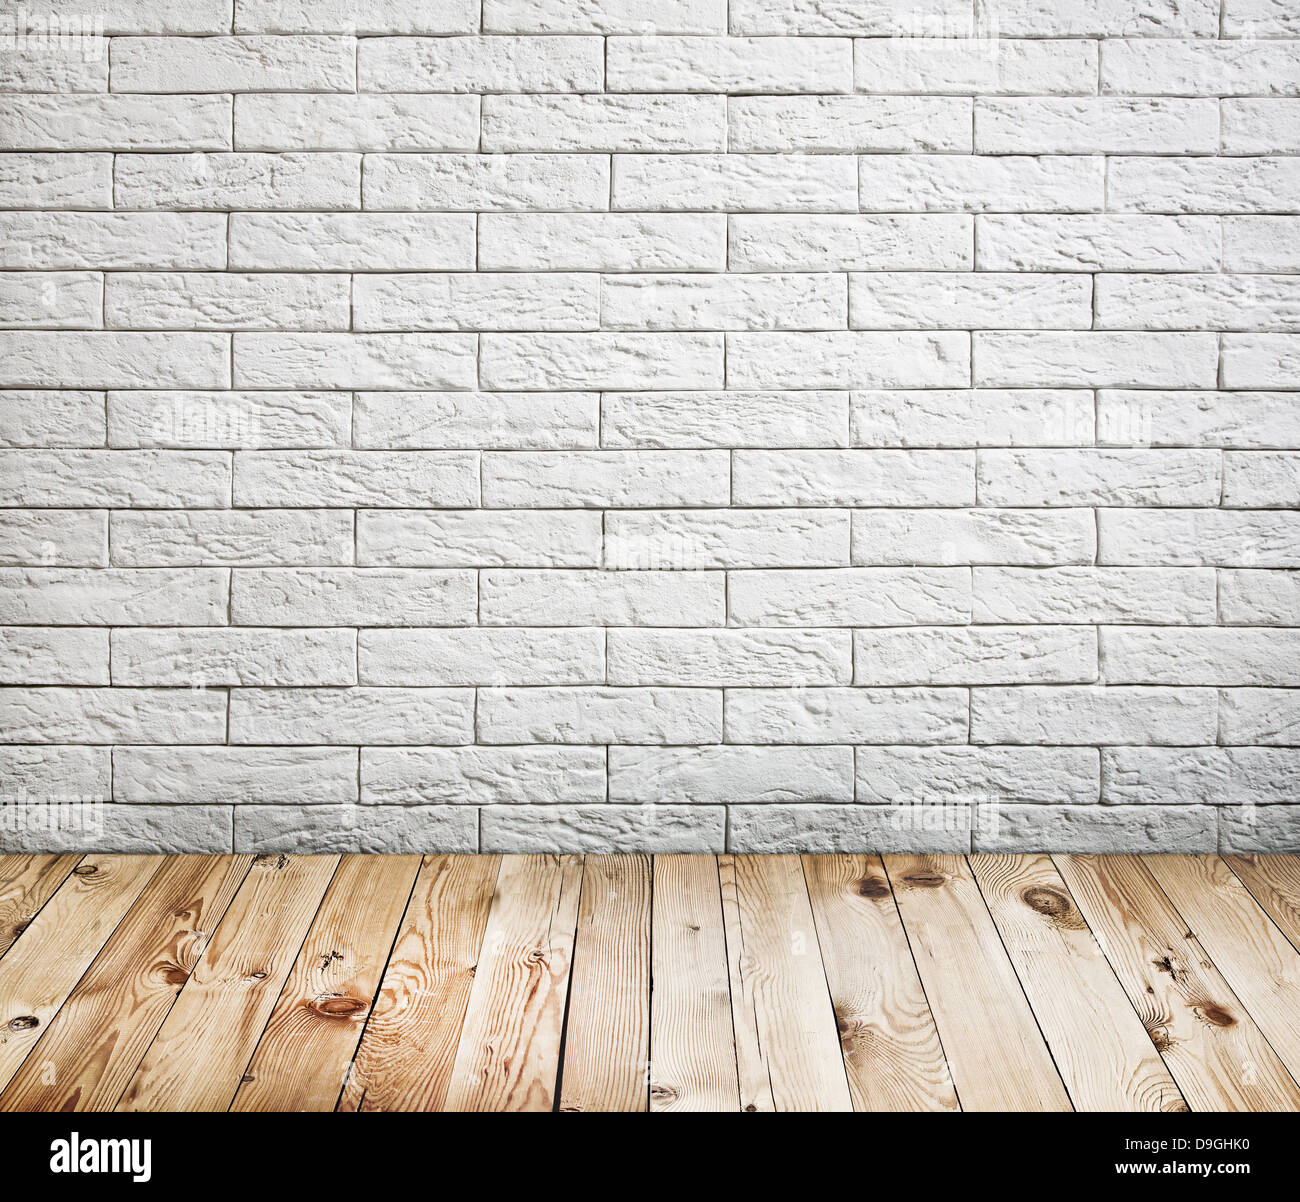 room interior with white brick wall and wood floor background stock